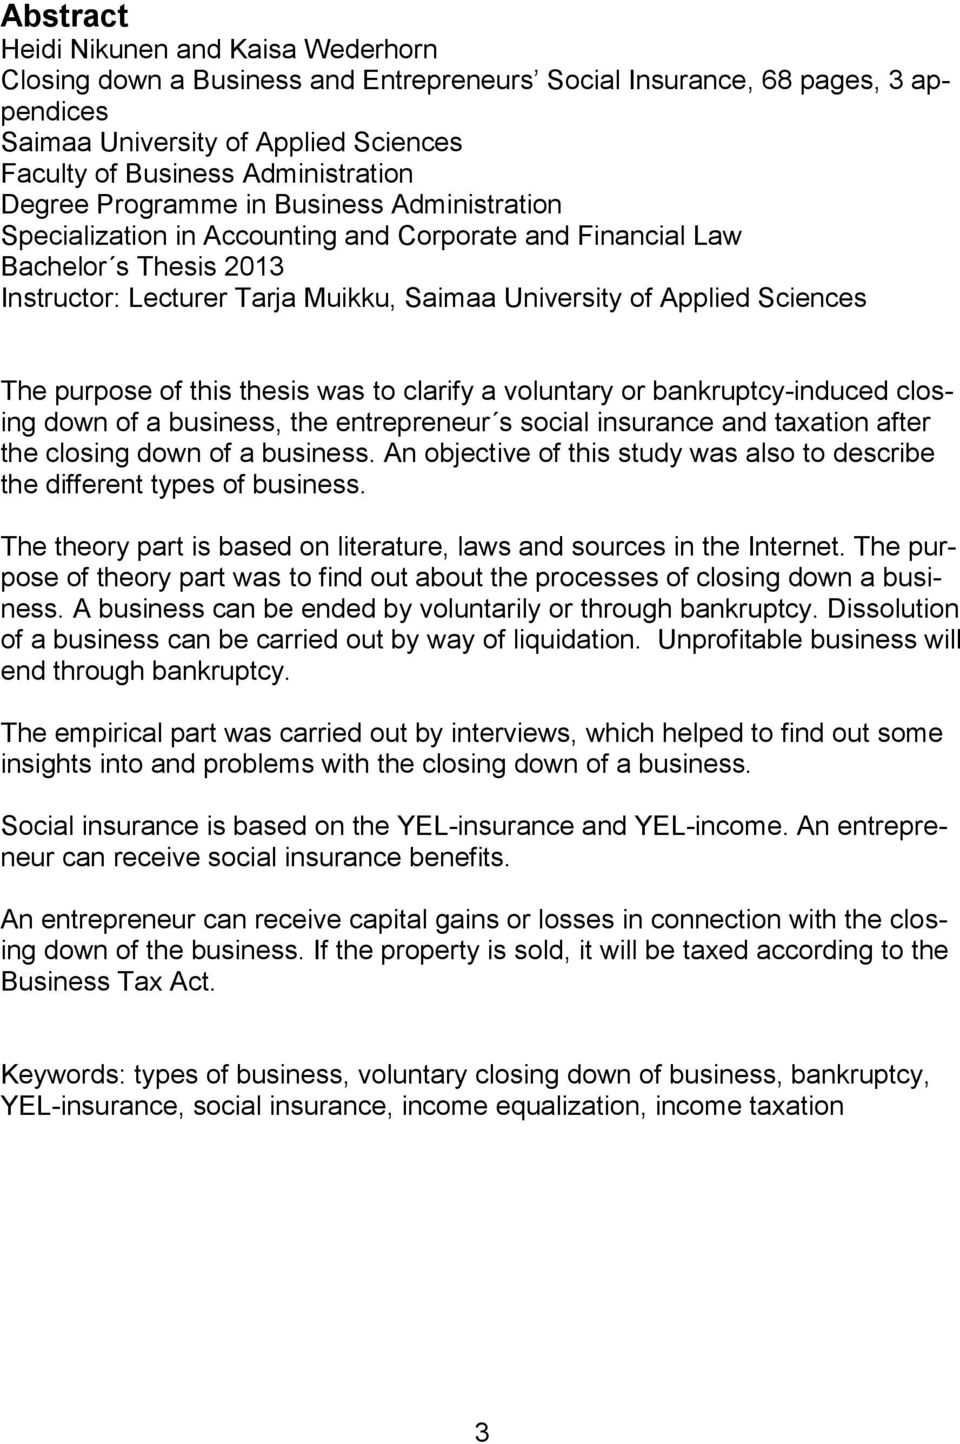 Sciences The purpose of this thesis was to clarify a voluntary or bankruptcy-induced closing down of a business, the entrepreneur s social insurance and taxation after the closing down of a business.